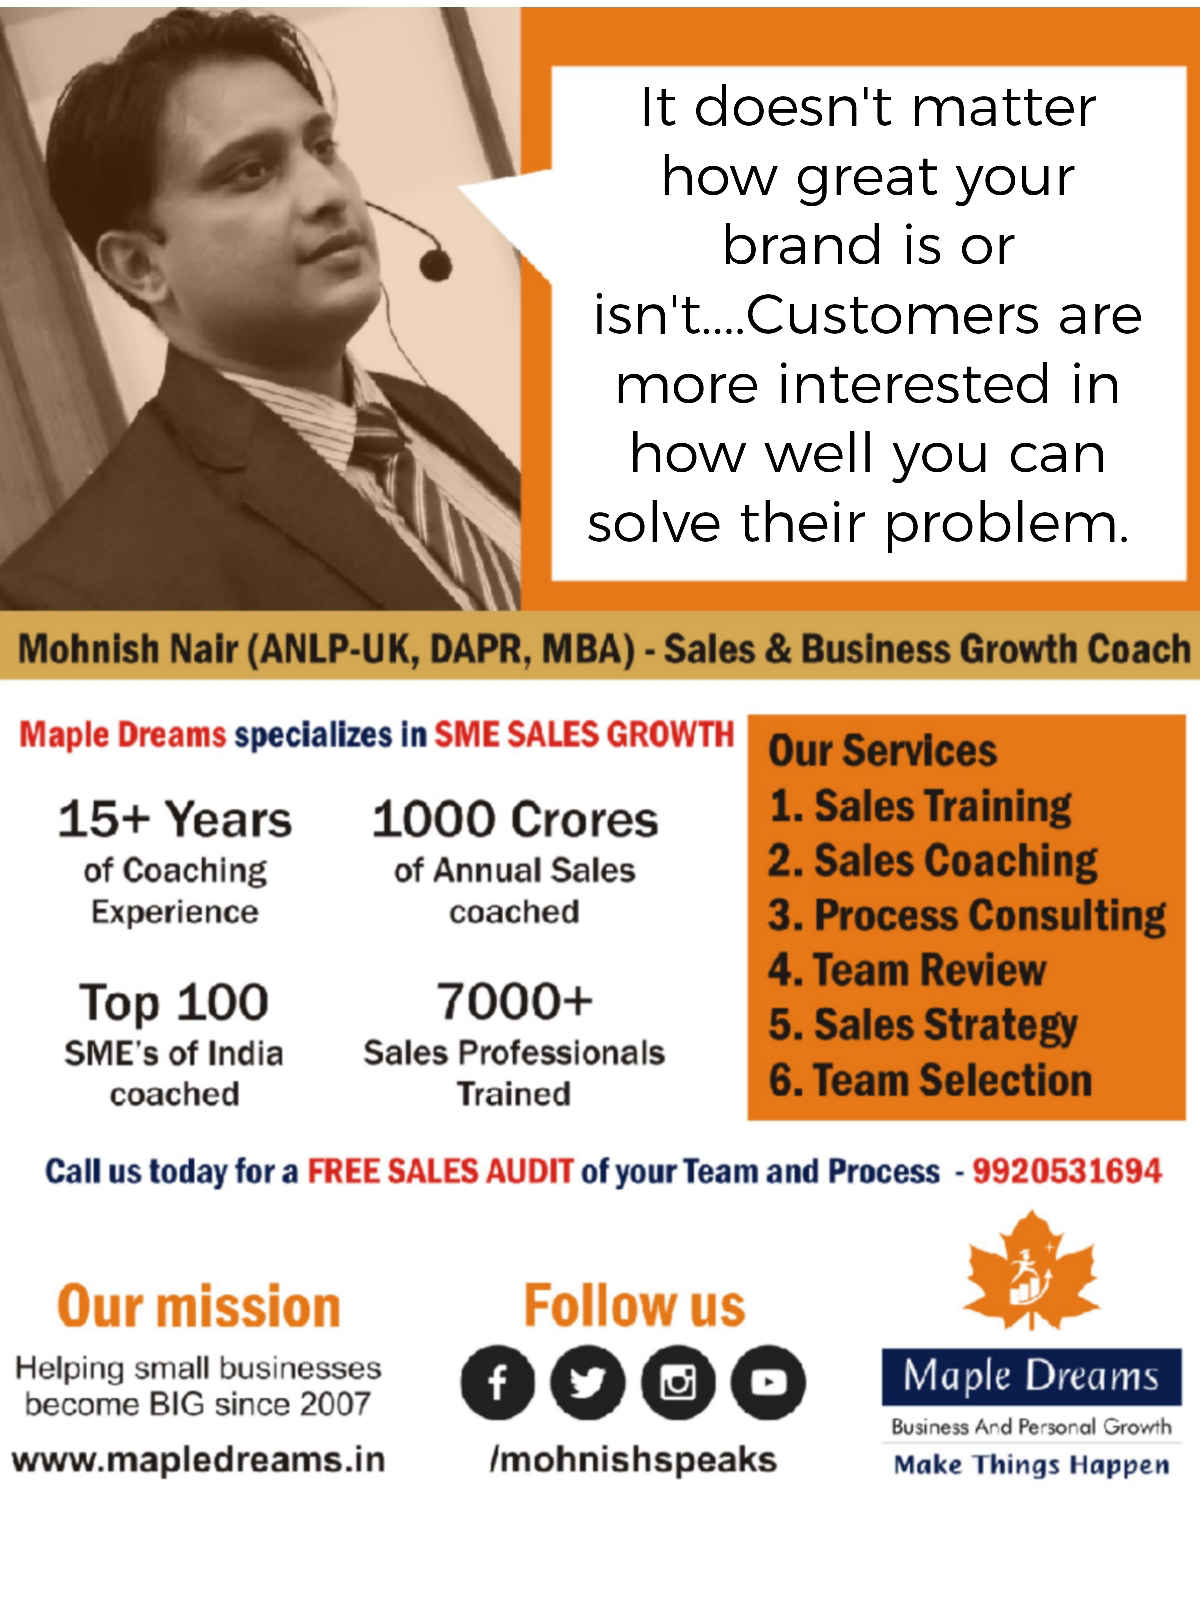 Call us for a free sales audit of your team and process – 9920531694www.youtube.com/mohnishspeaks #sales #mohnishspeaks #coaching #team #training #audit #marketing #smallbusiness #success #salestraining #salesmanagement #hiring #salesenablement